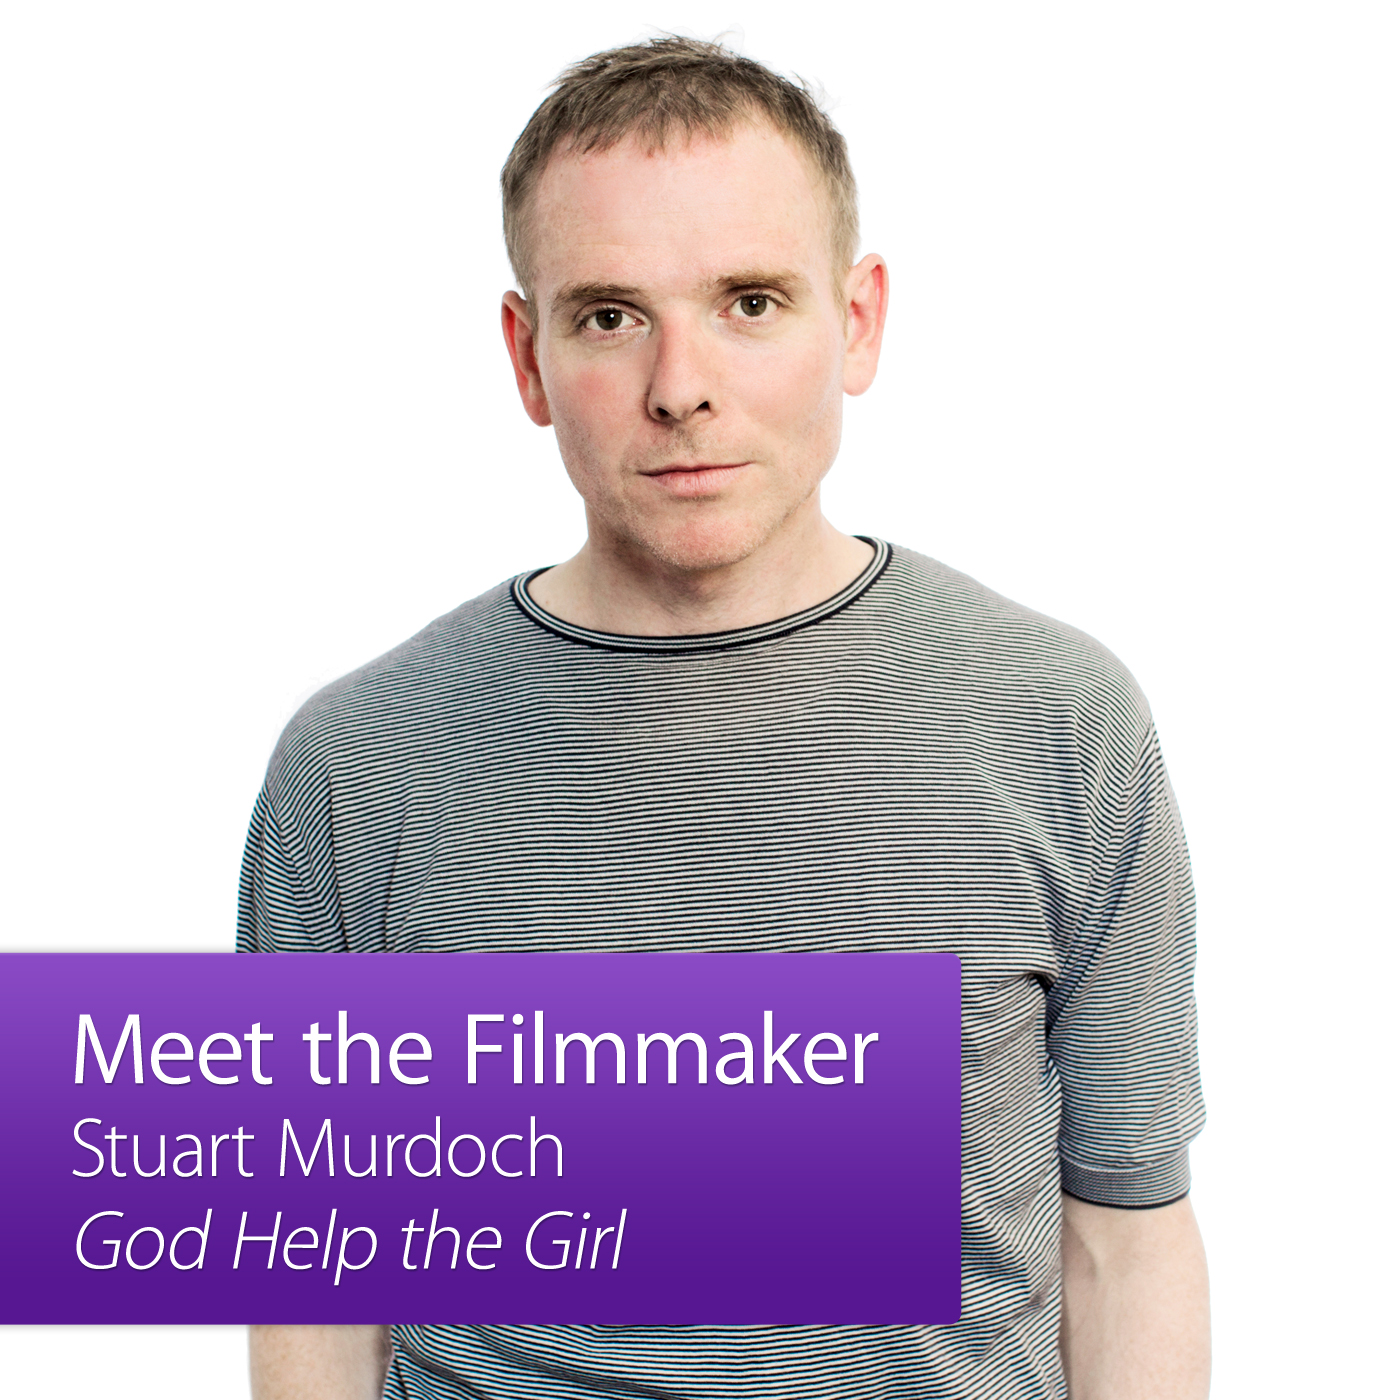 Stuart Murdoch: Meet the Filmmaker